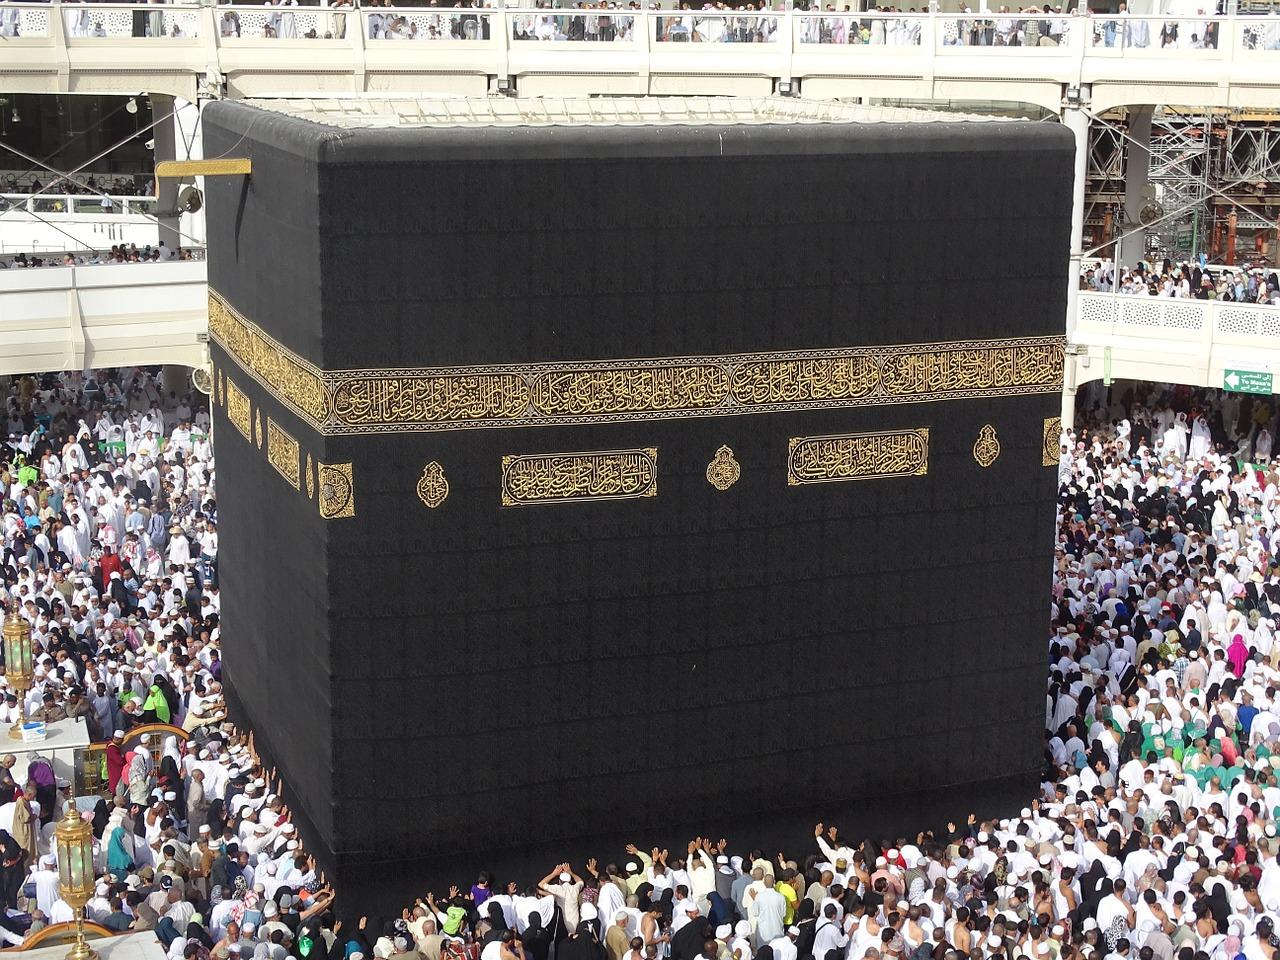 Fear of Coronavirus, Saudi Arabia denies foreigners access to holy places